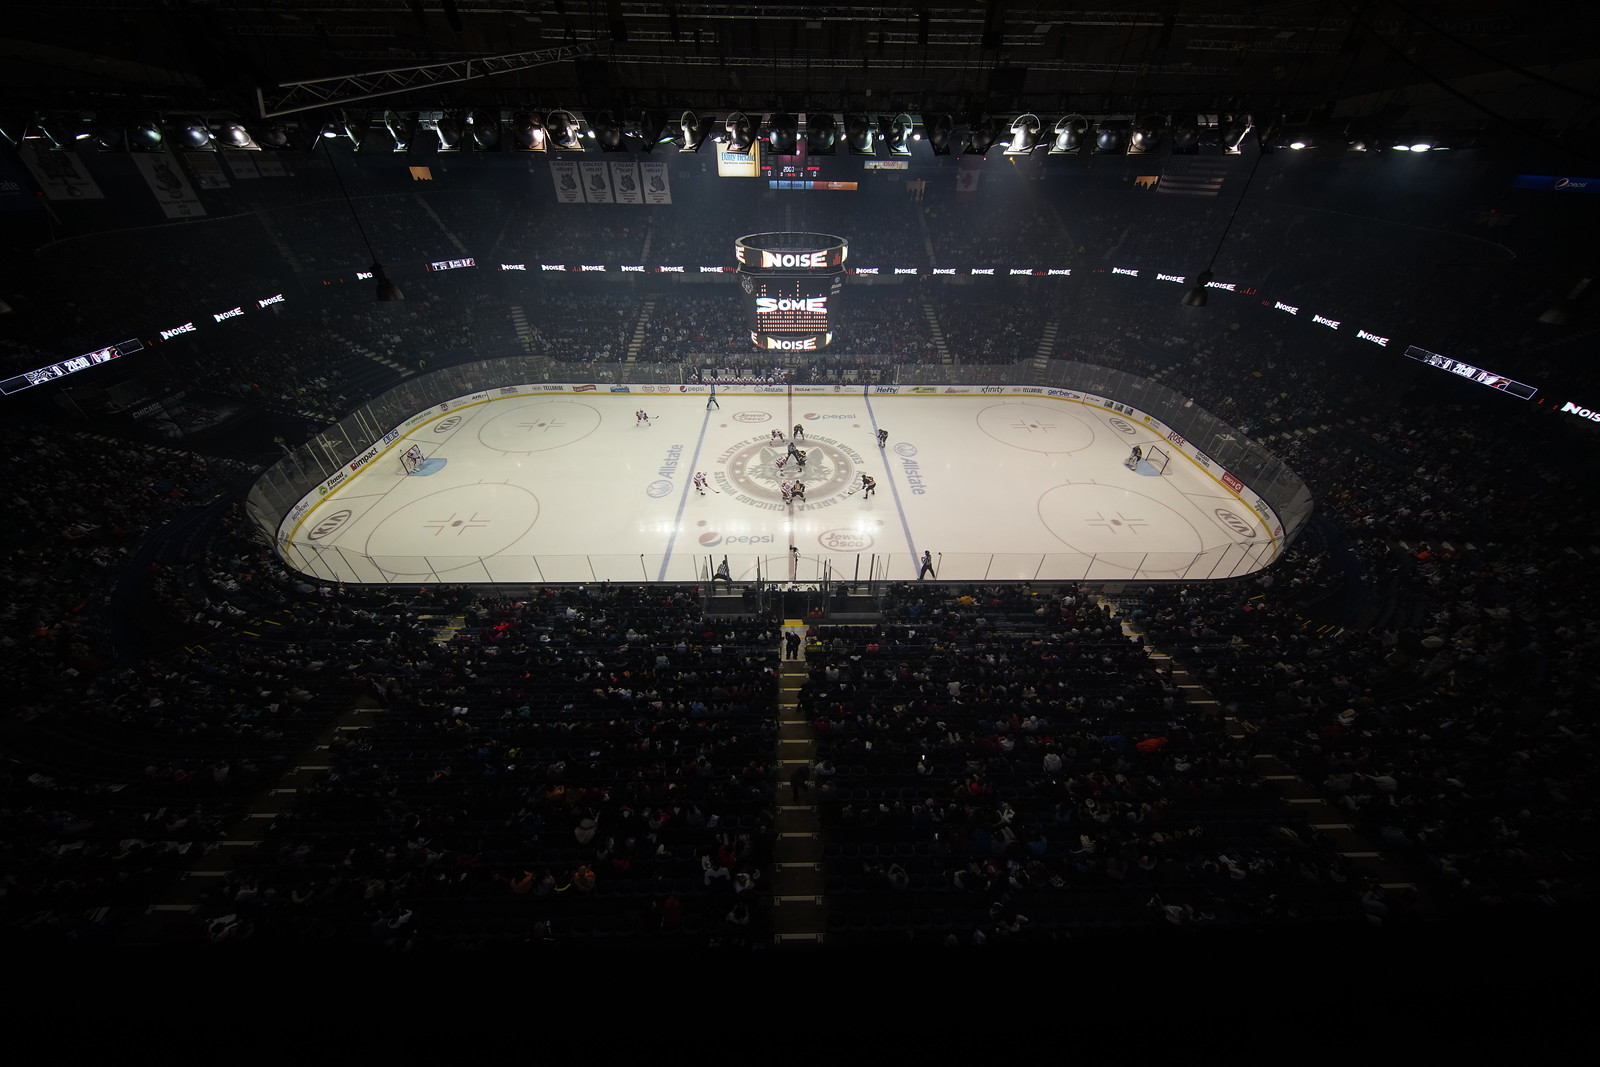 Feb. 20, 2020 vs. Grand Rapids Griffins